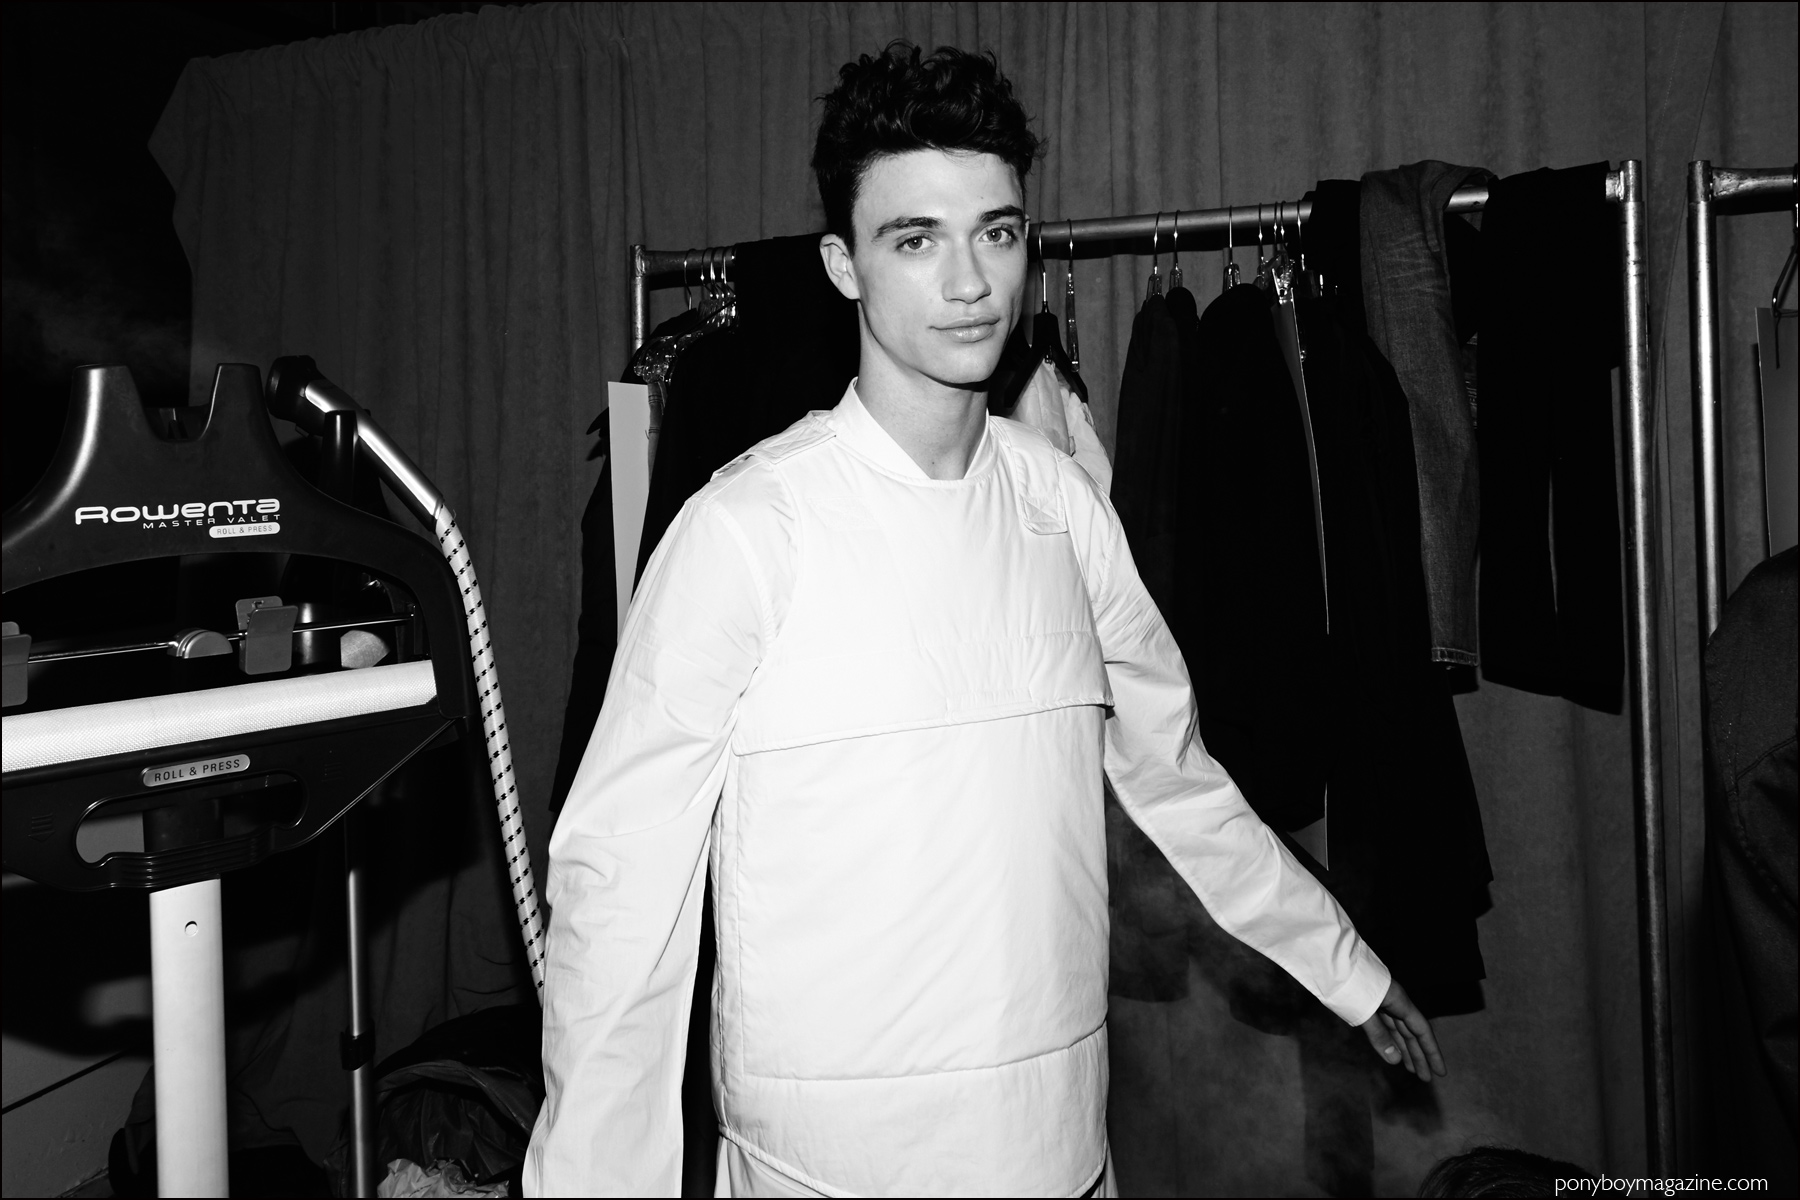 A male model photographed backstage in a white vest and shirt by Stampd F/W16 menswear label. Photography by Alexander Thompson for Ponyboy magazine NY.